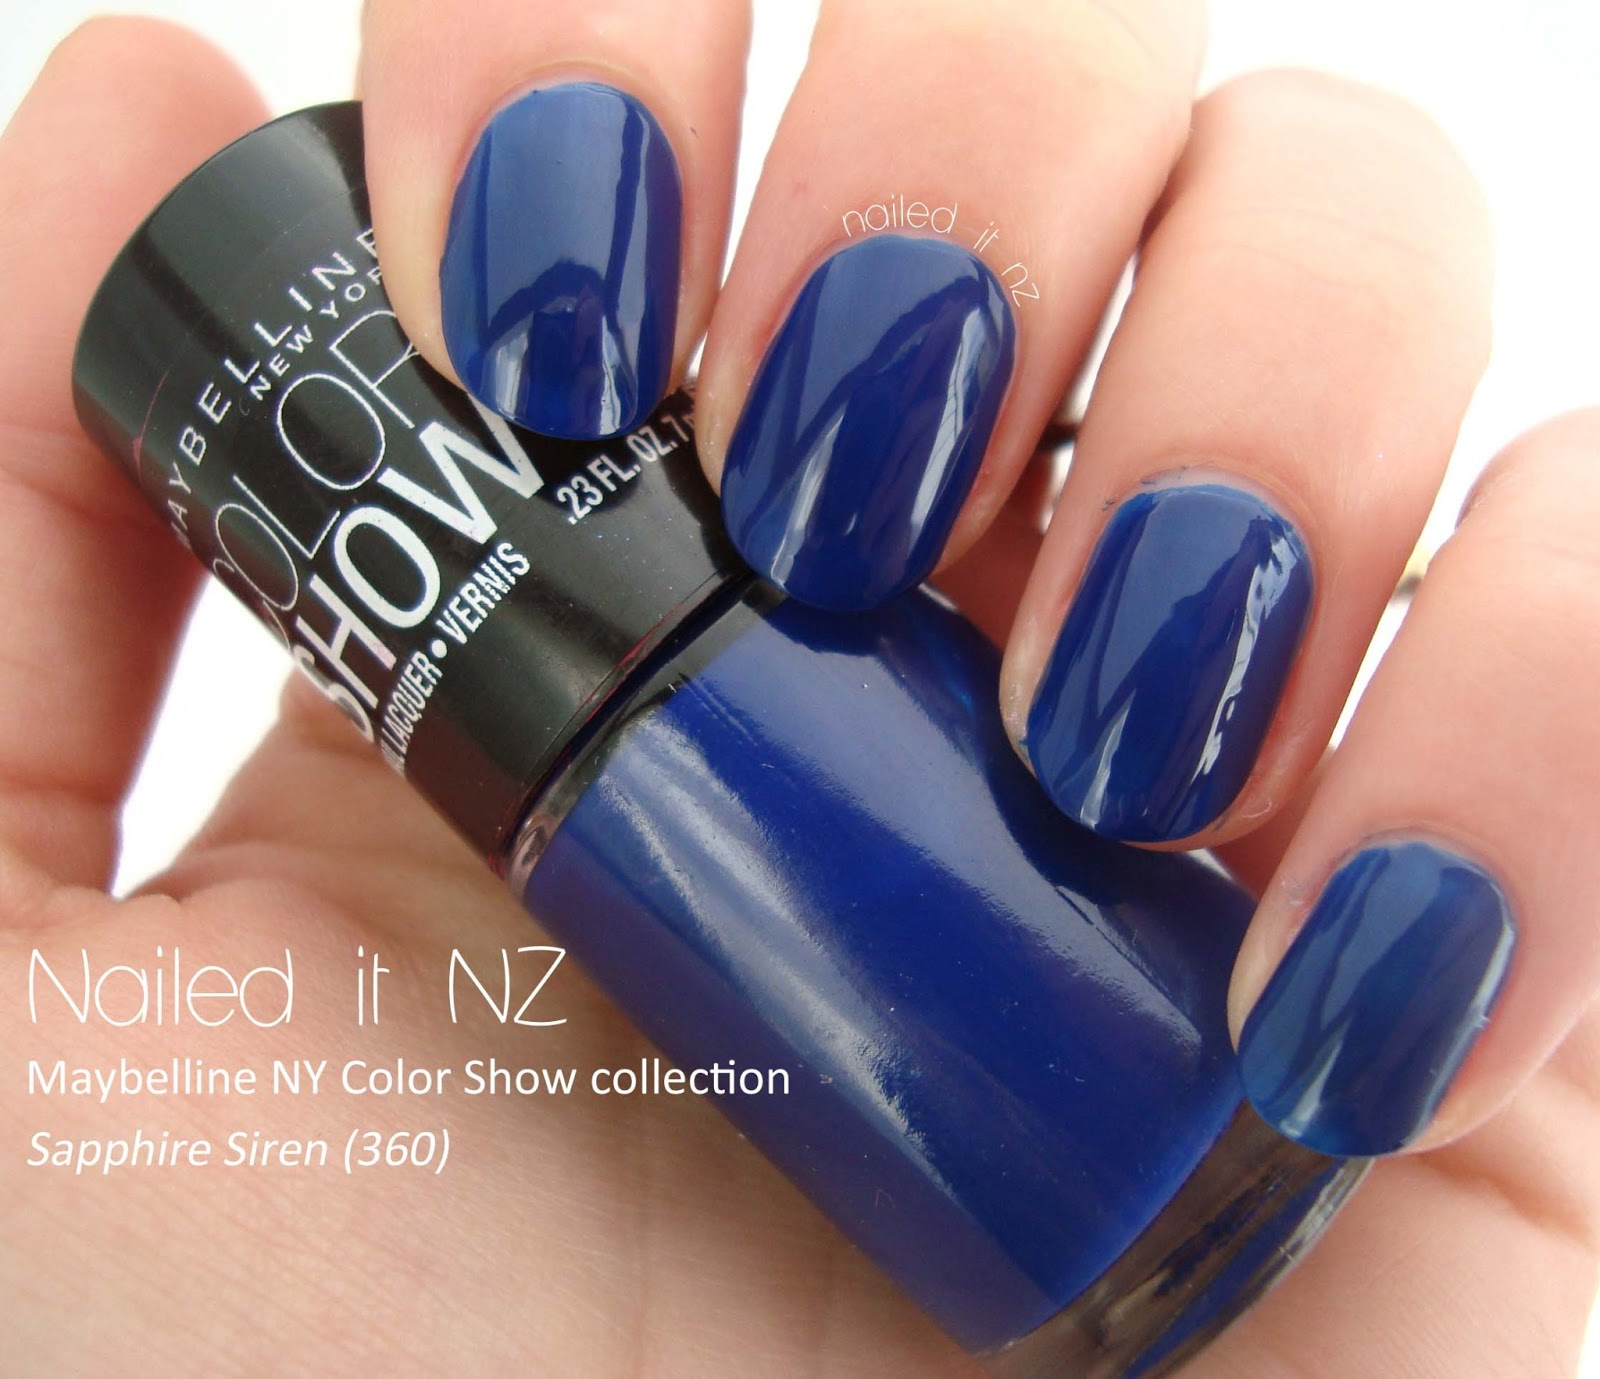 Maybelline New York Color Show collection - swatches and reviews!